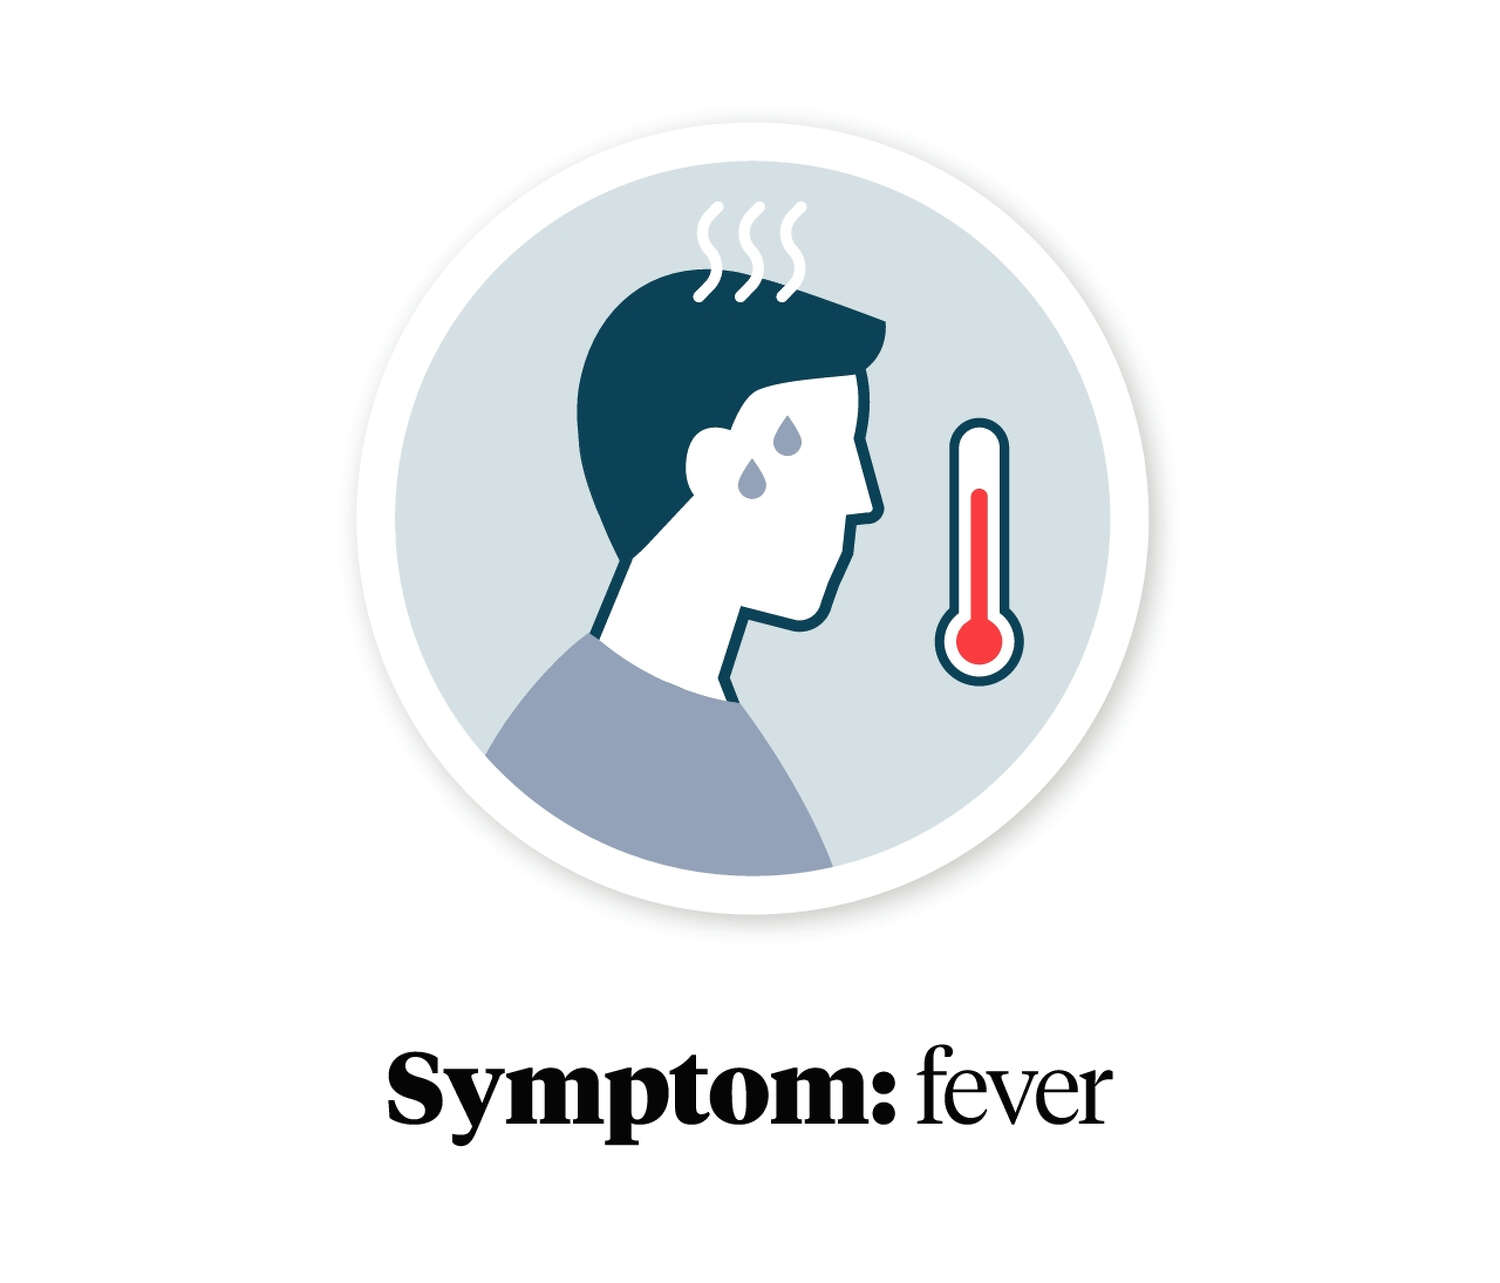 Graphic showing a person with a fever